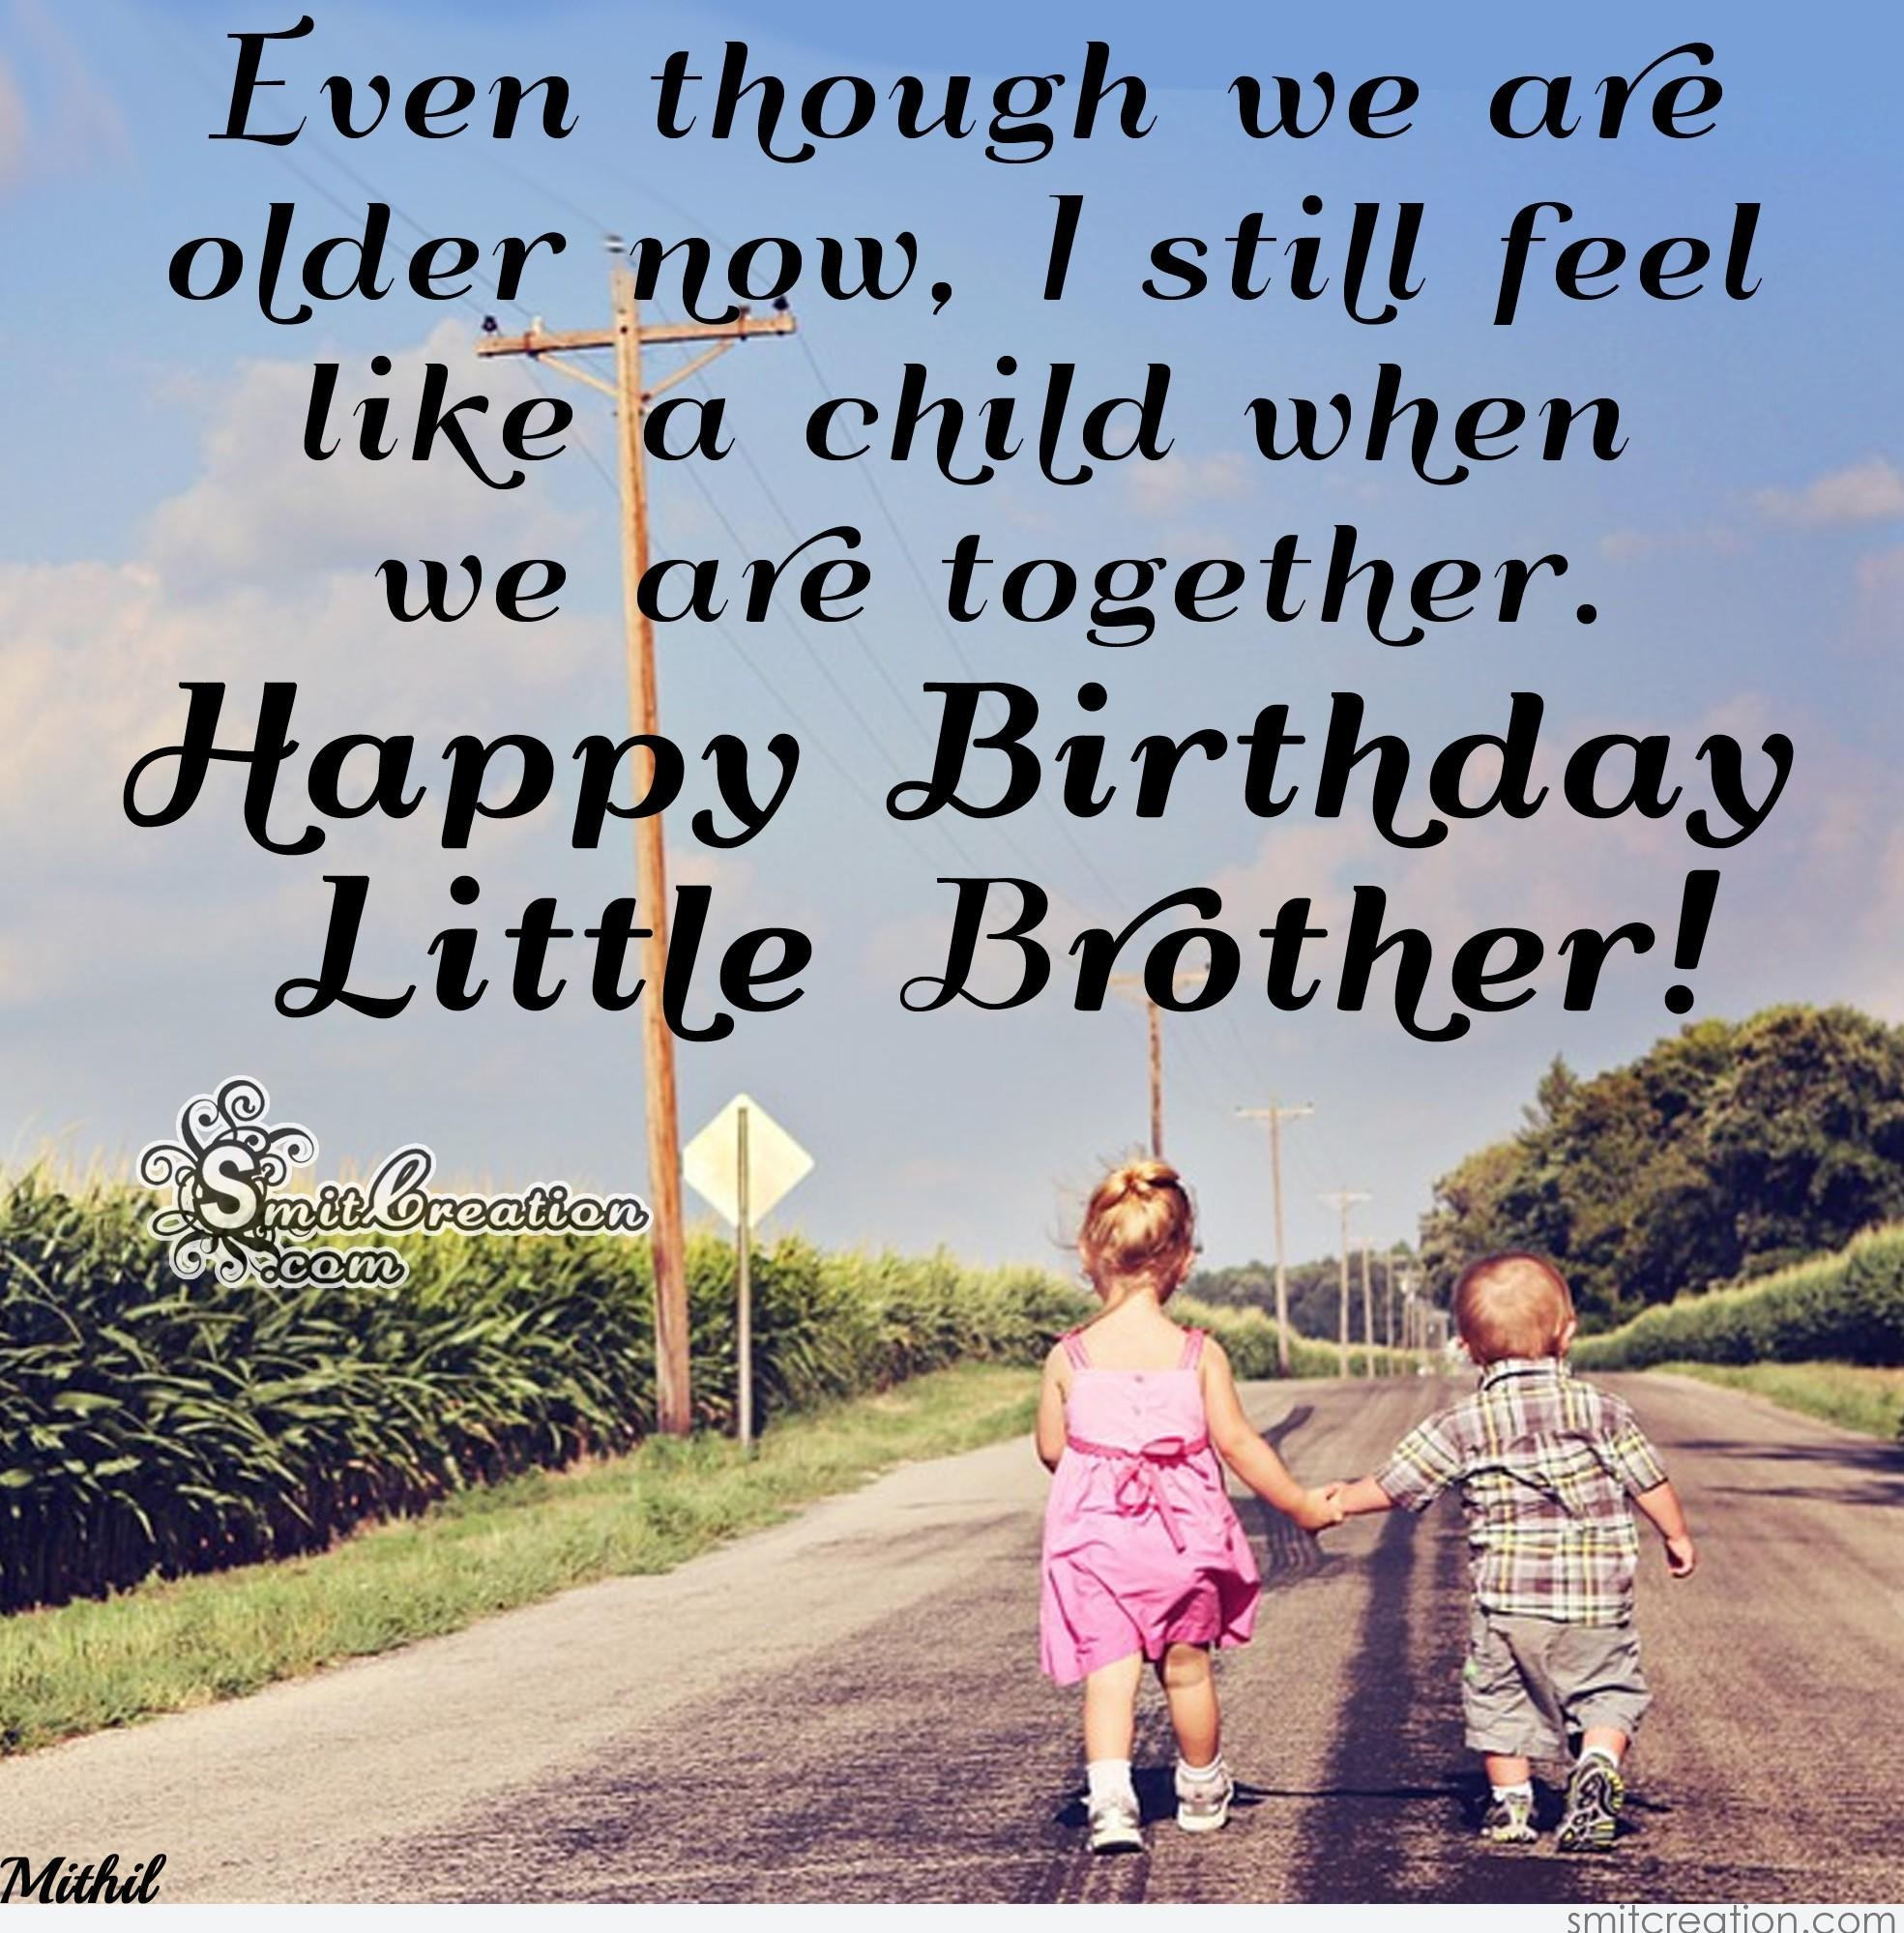 Quotes For Little Brothers Birthday: Birthday Wishes For Brother Pictures And Graphics